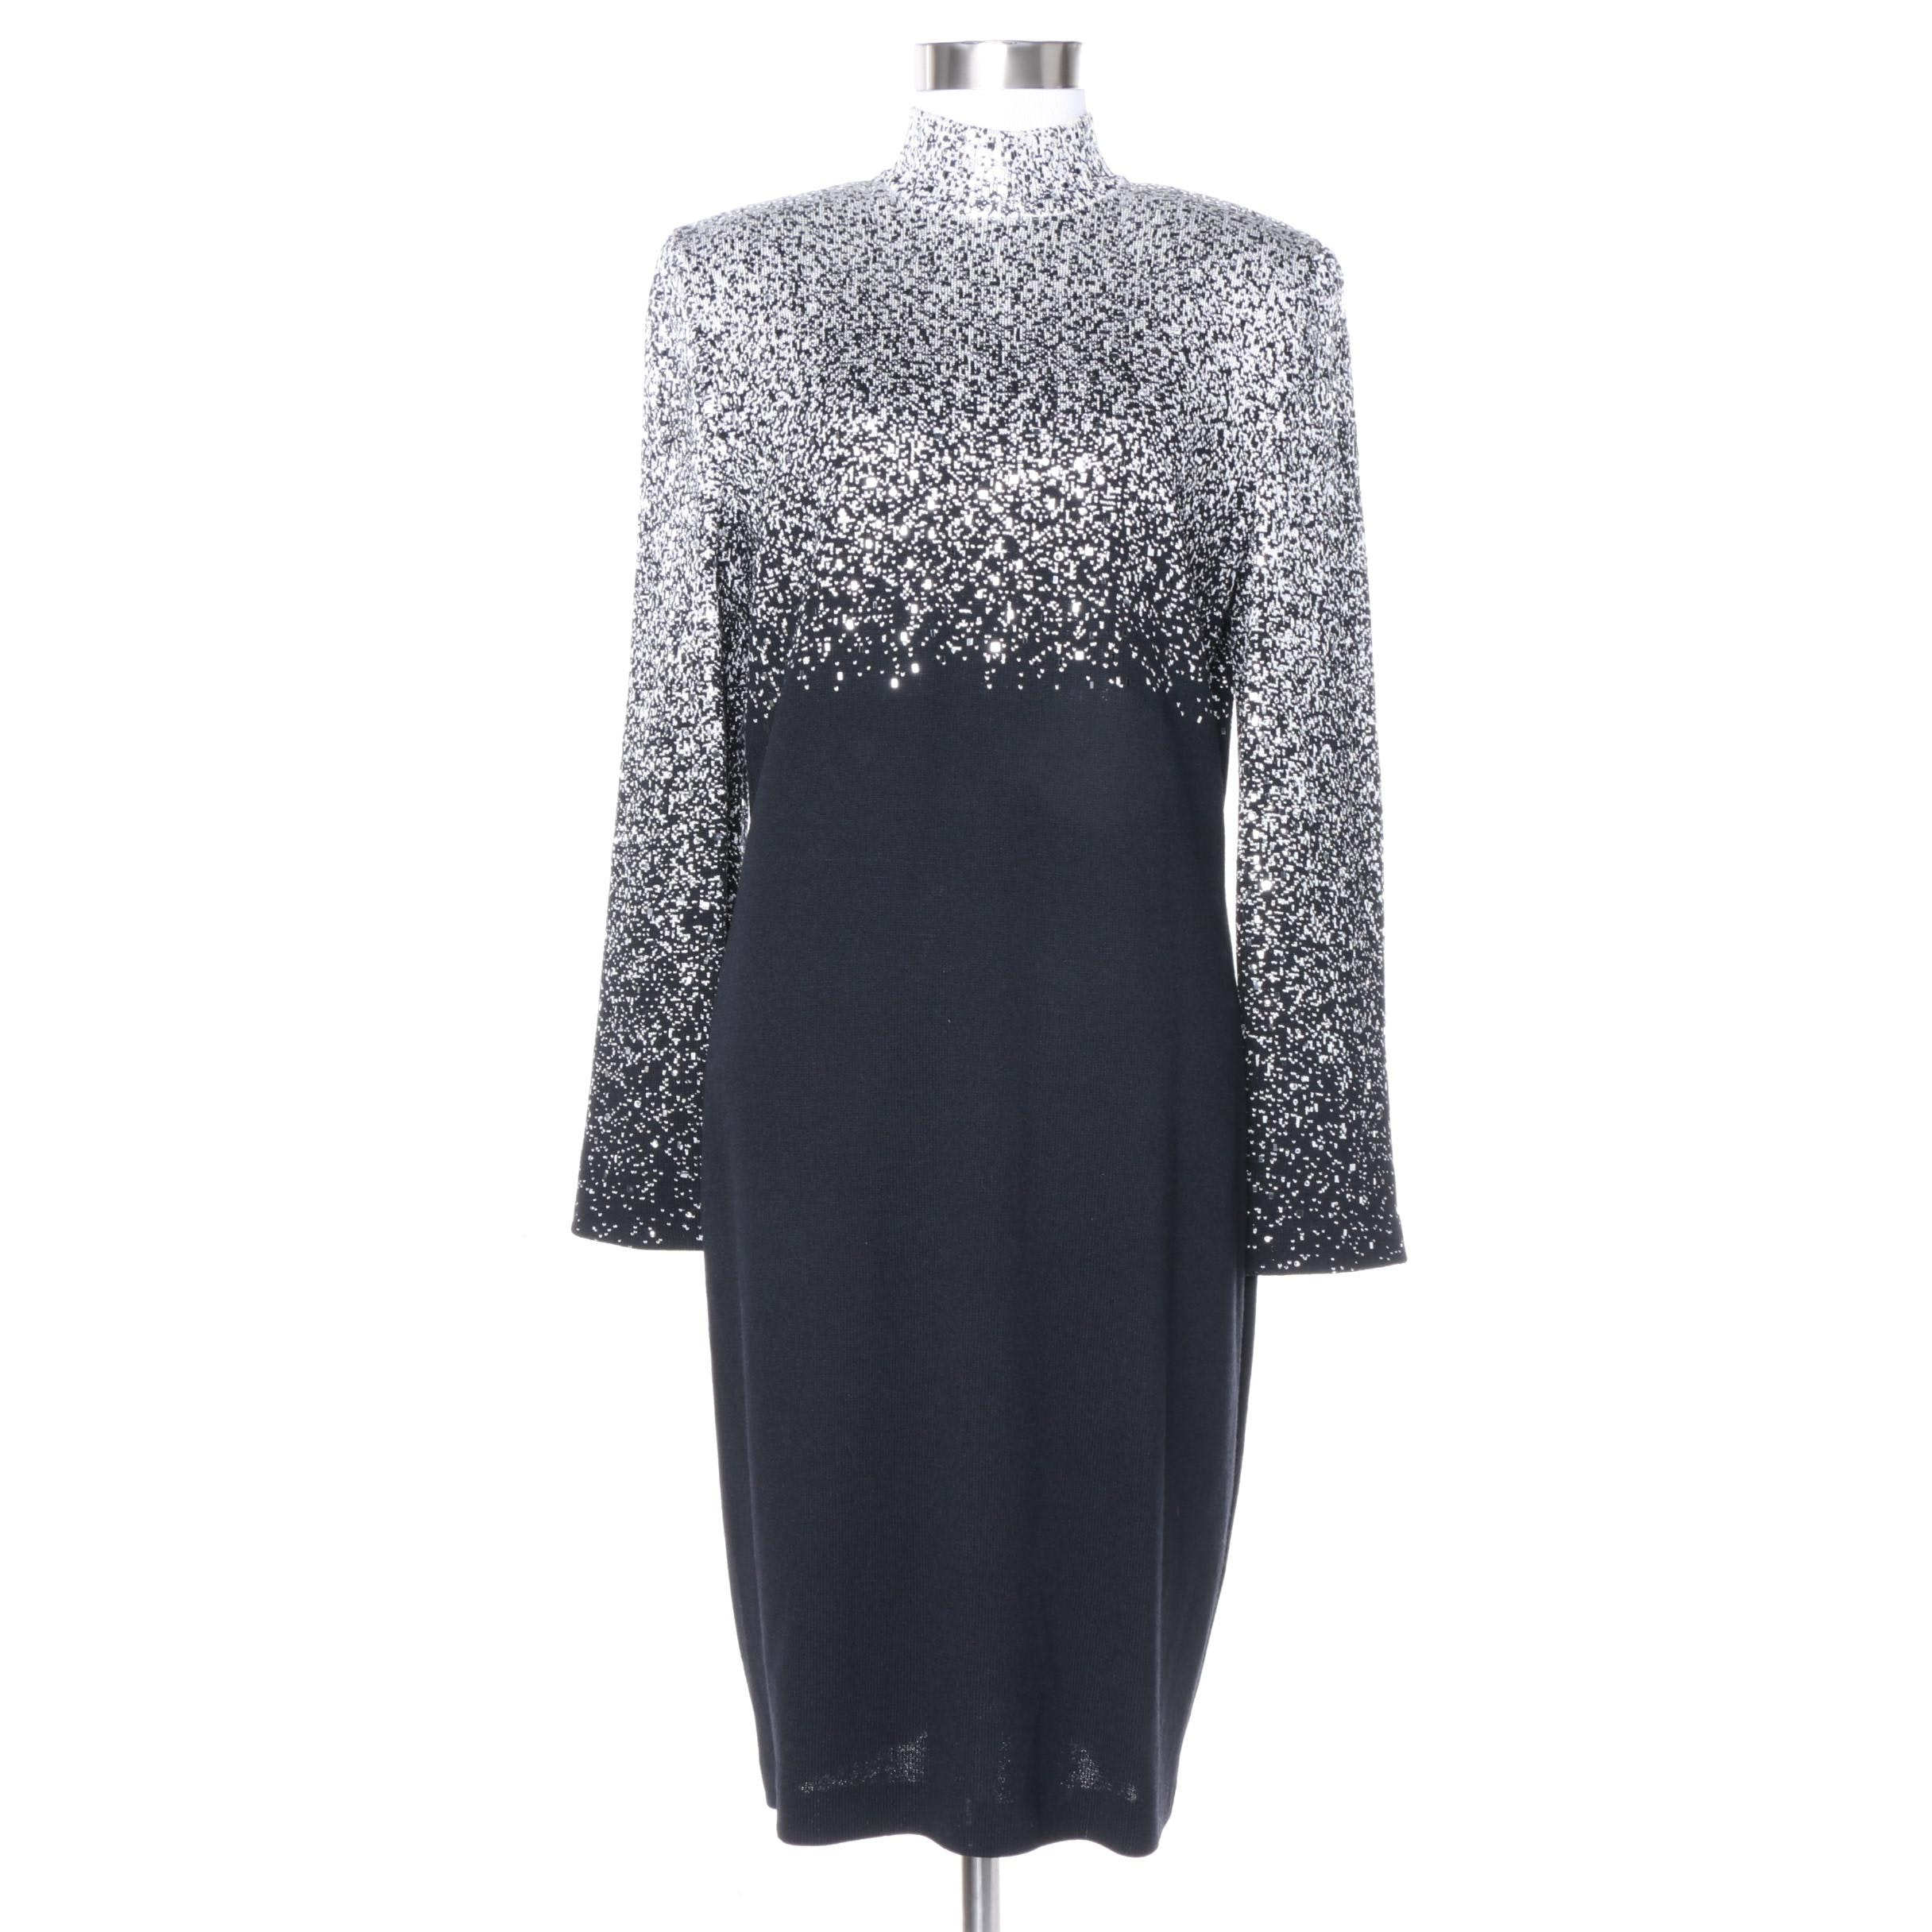 St. John Evening Embellished Knit Cocktail Dress